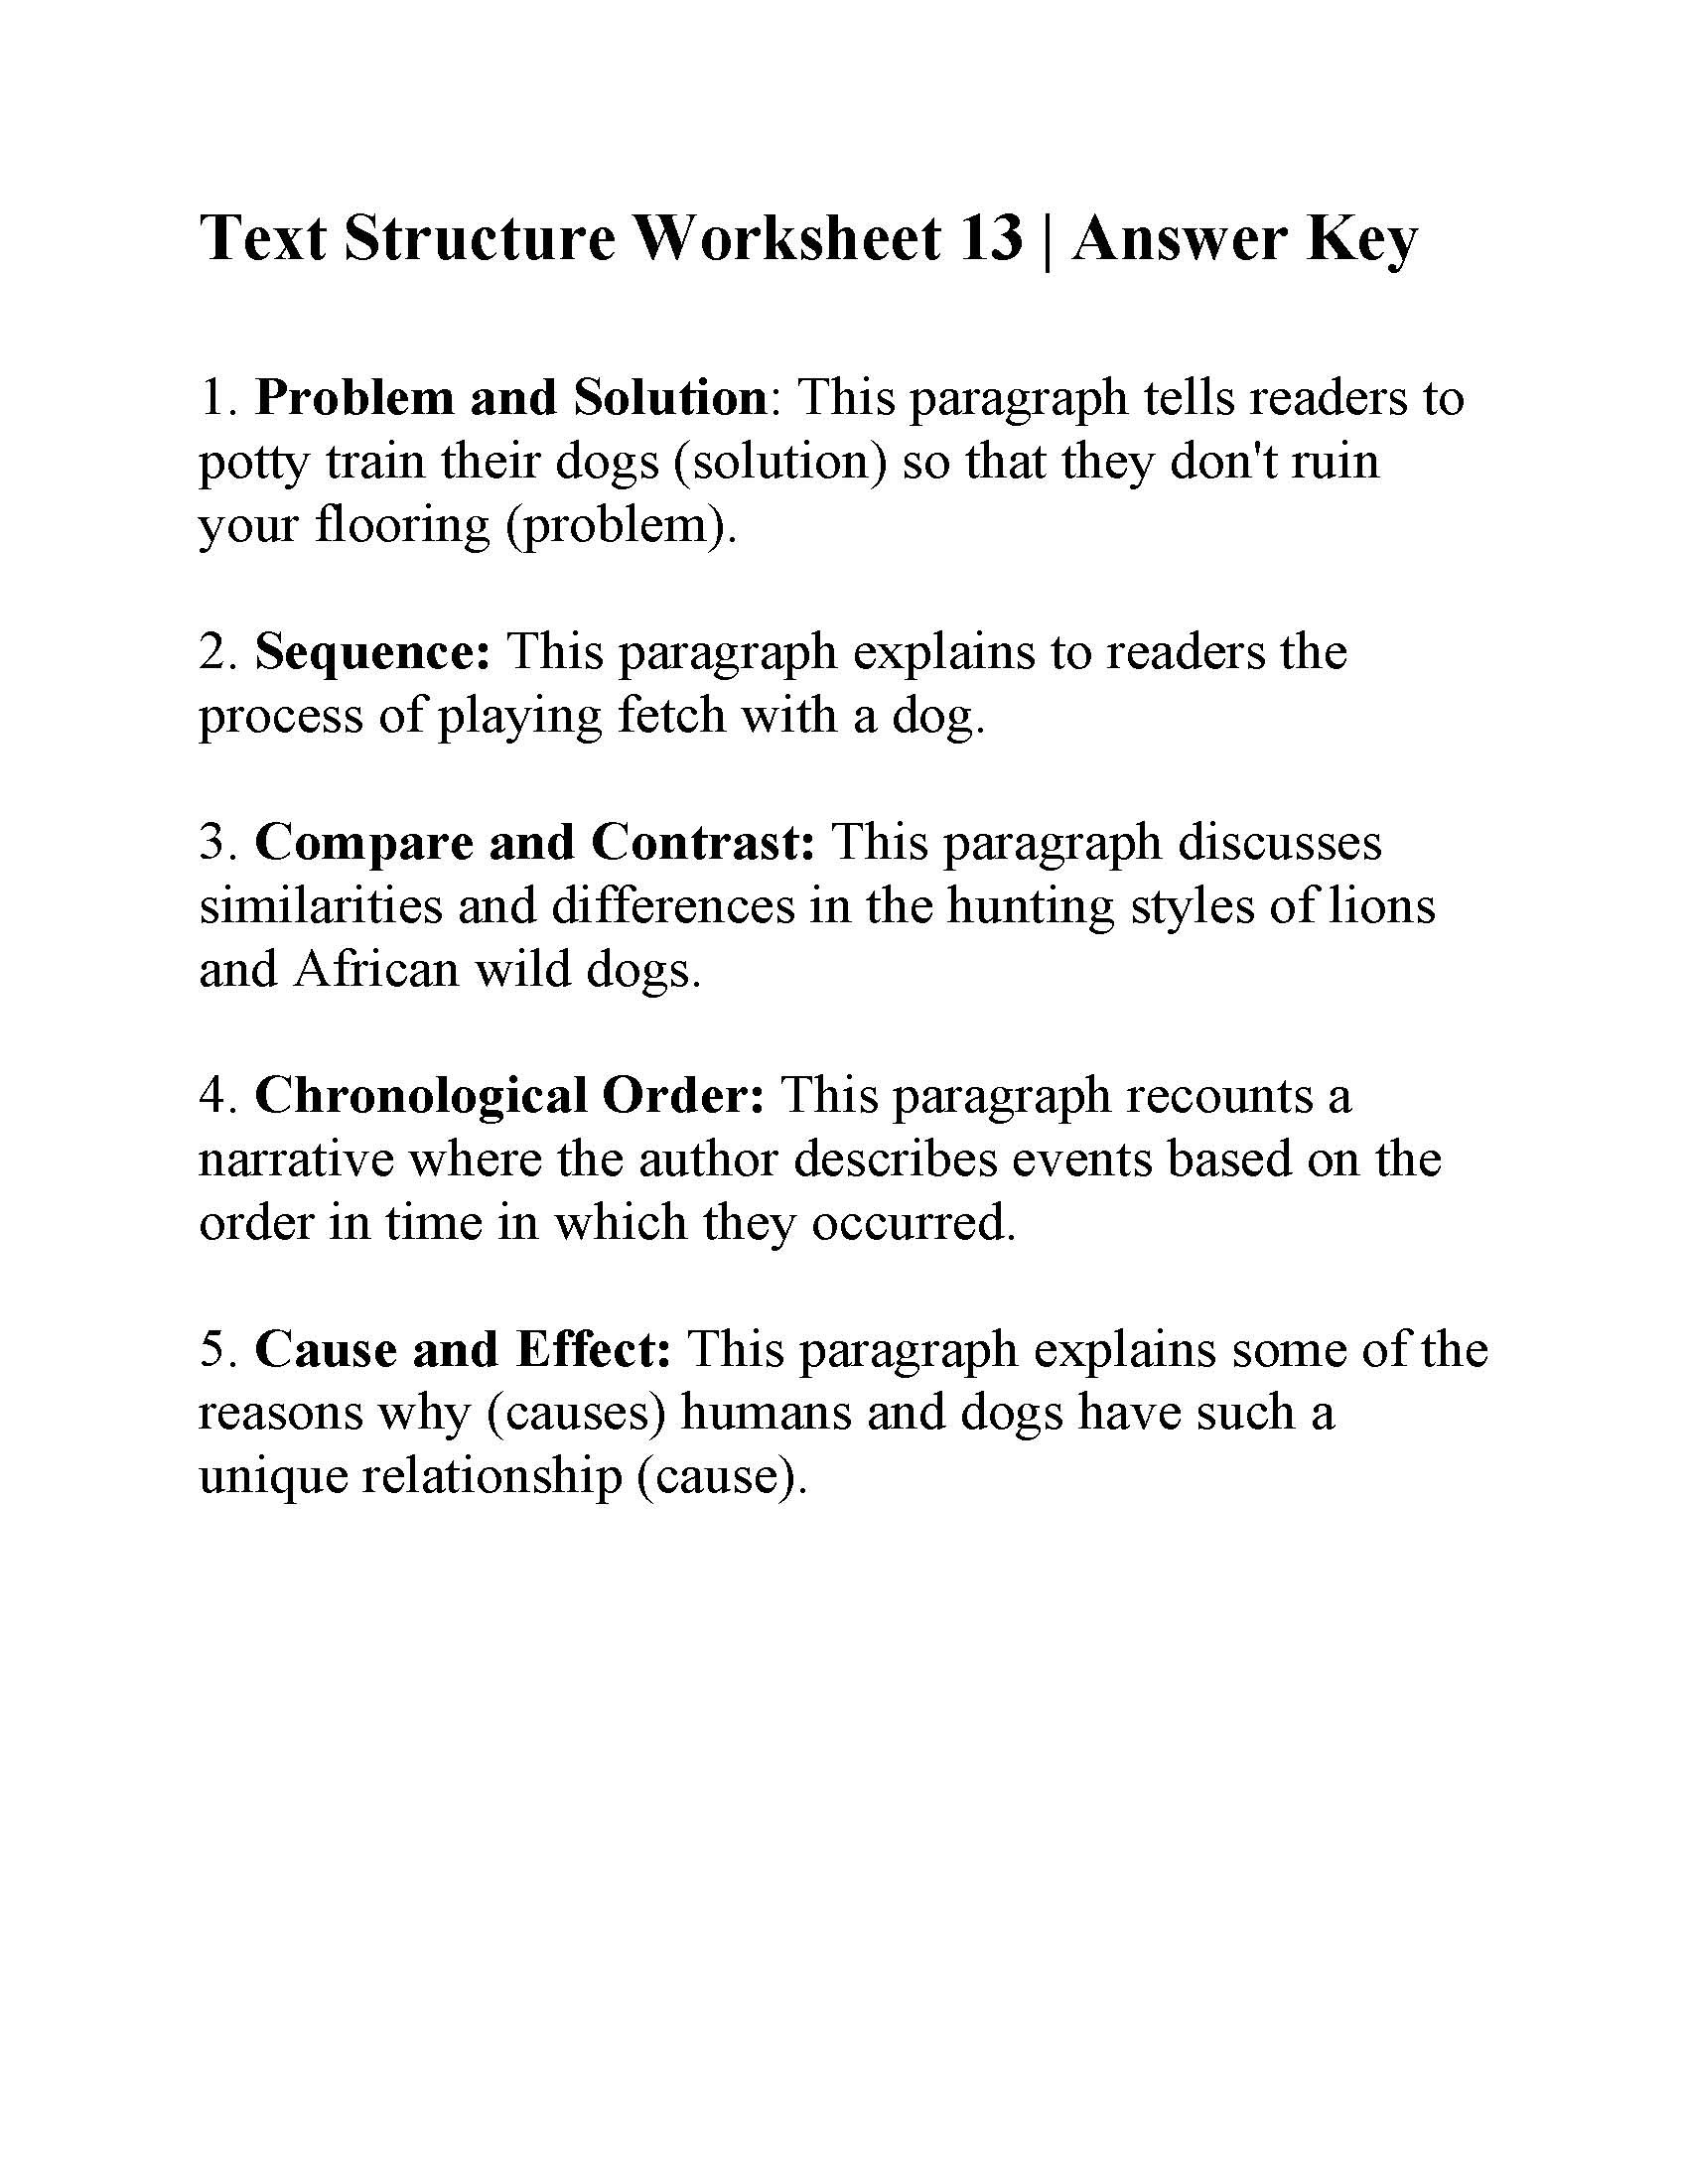 Text Structure Worksheets 3rd Grade Text Structure Worksheet Answers Worksheets Matematik Games